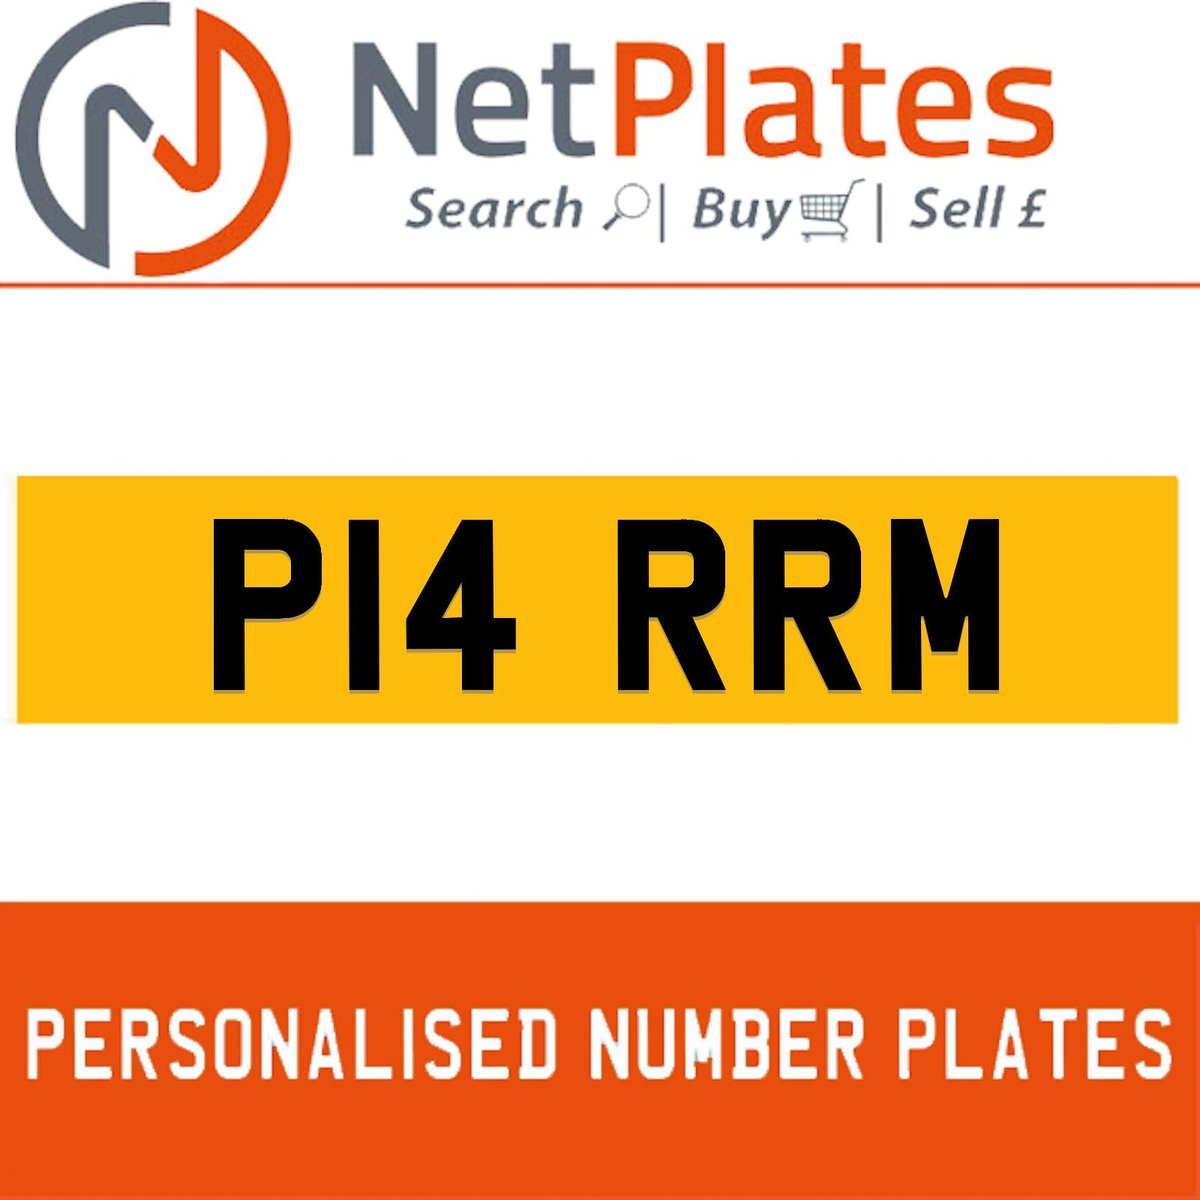 P14 RRM PERSONALISED PRIVATE CHERISHED DVLA NUMBER PLATE For Sale (picture 1 of 5)